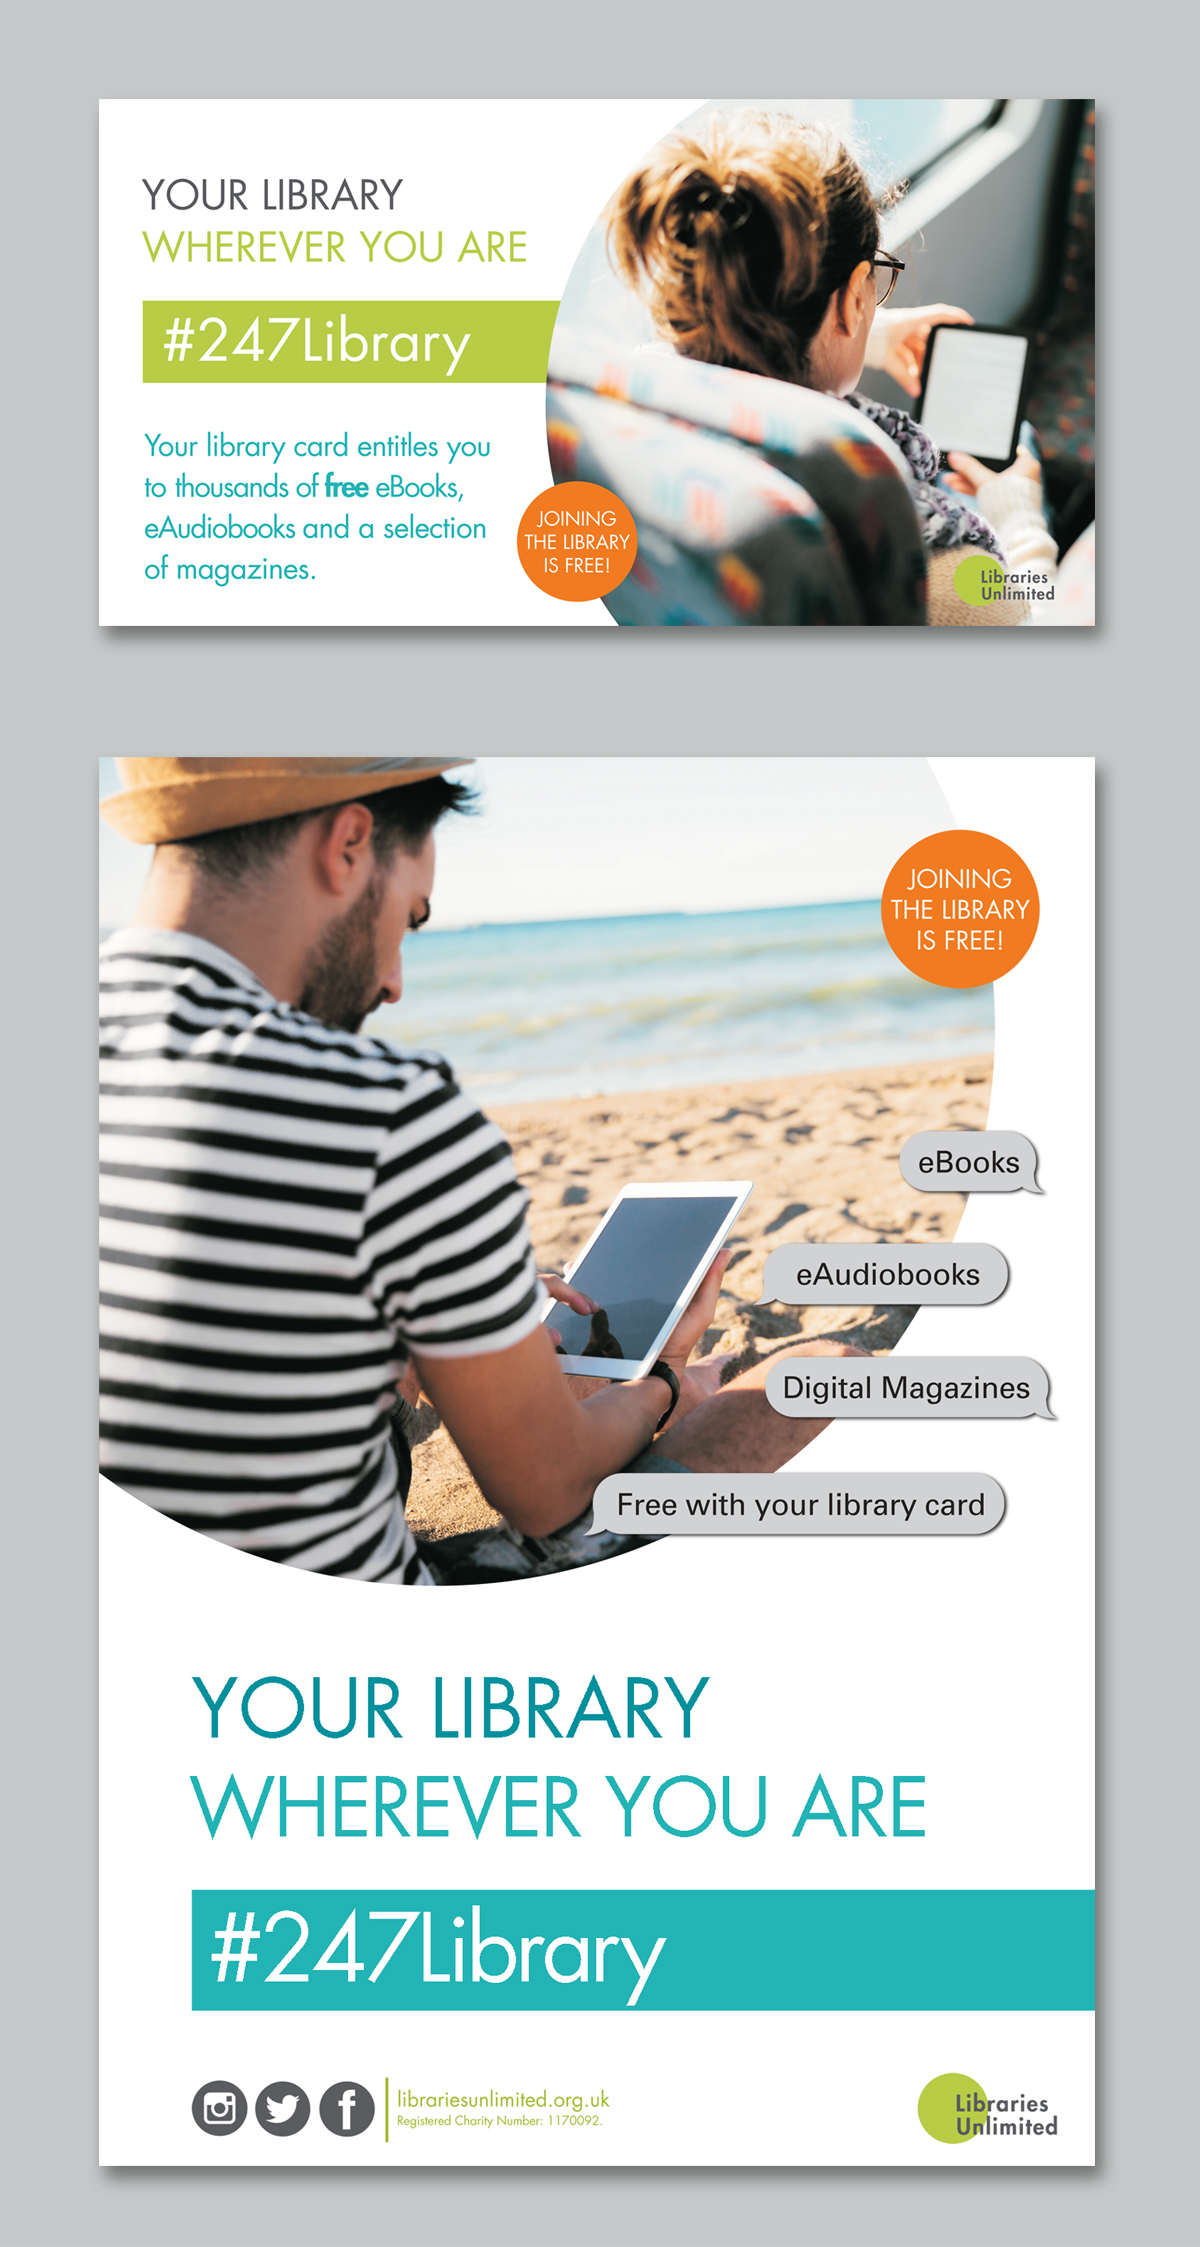 Libraries Unlimited web ads